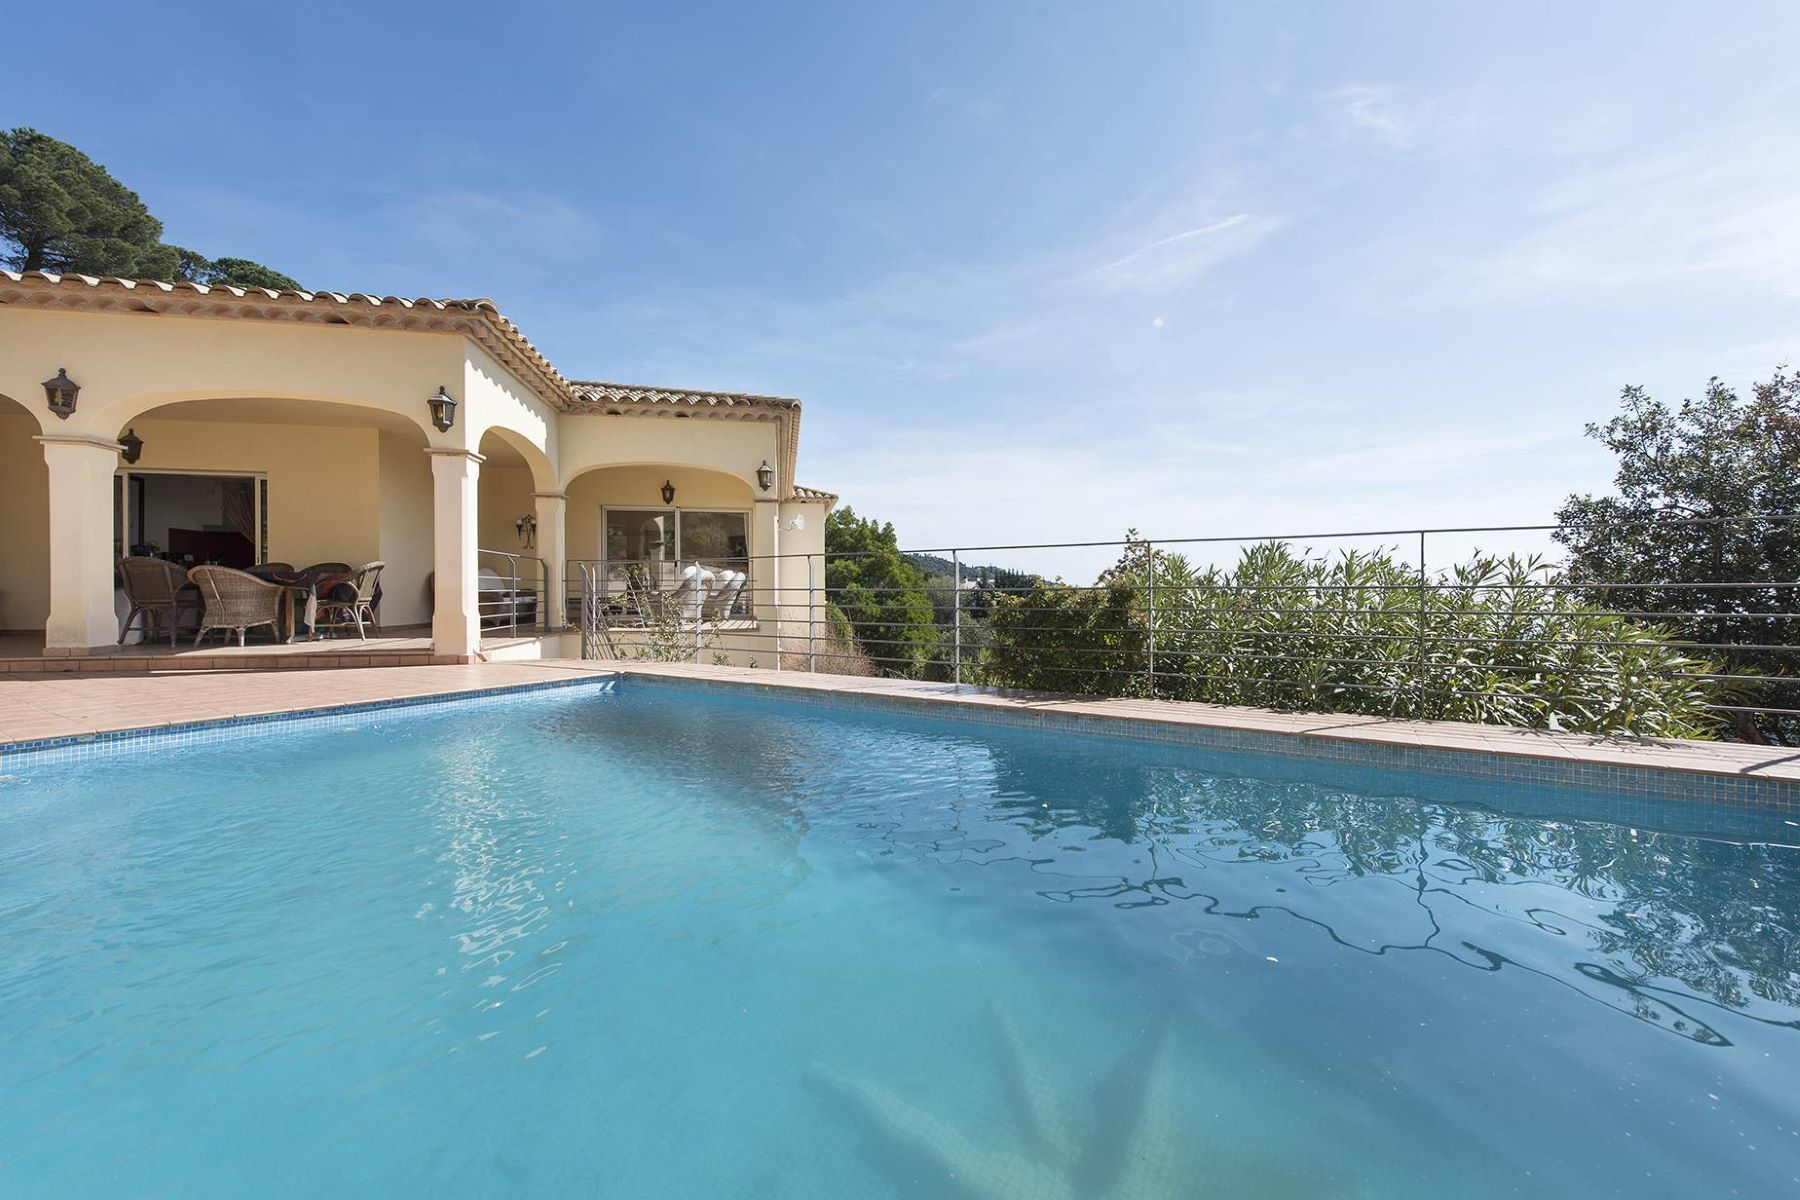 Single Family Home for Sale at Cosy villa with sea and mountain views Playa De Aro, Costa Brava, 17250 Spain